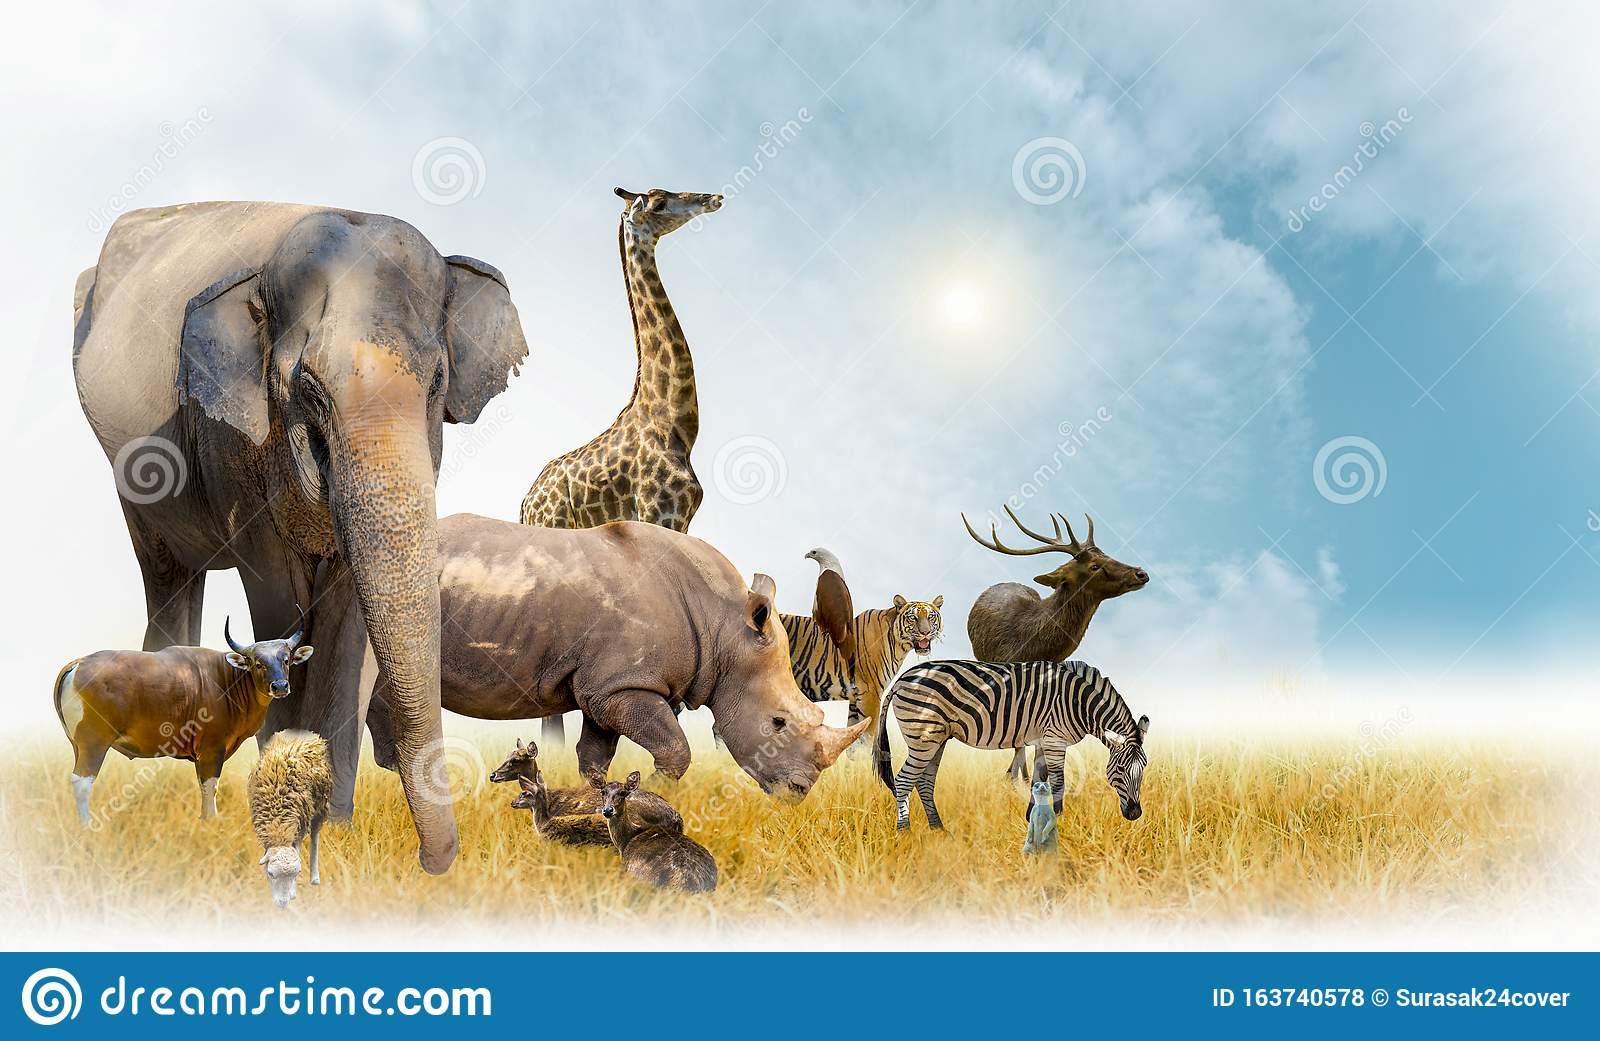 African Safari And Asian Animals In The Theme Illustration Filled With Many Animals A White Border Image Stock Photo Image Of Hunter Isolated 163740578